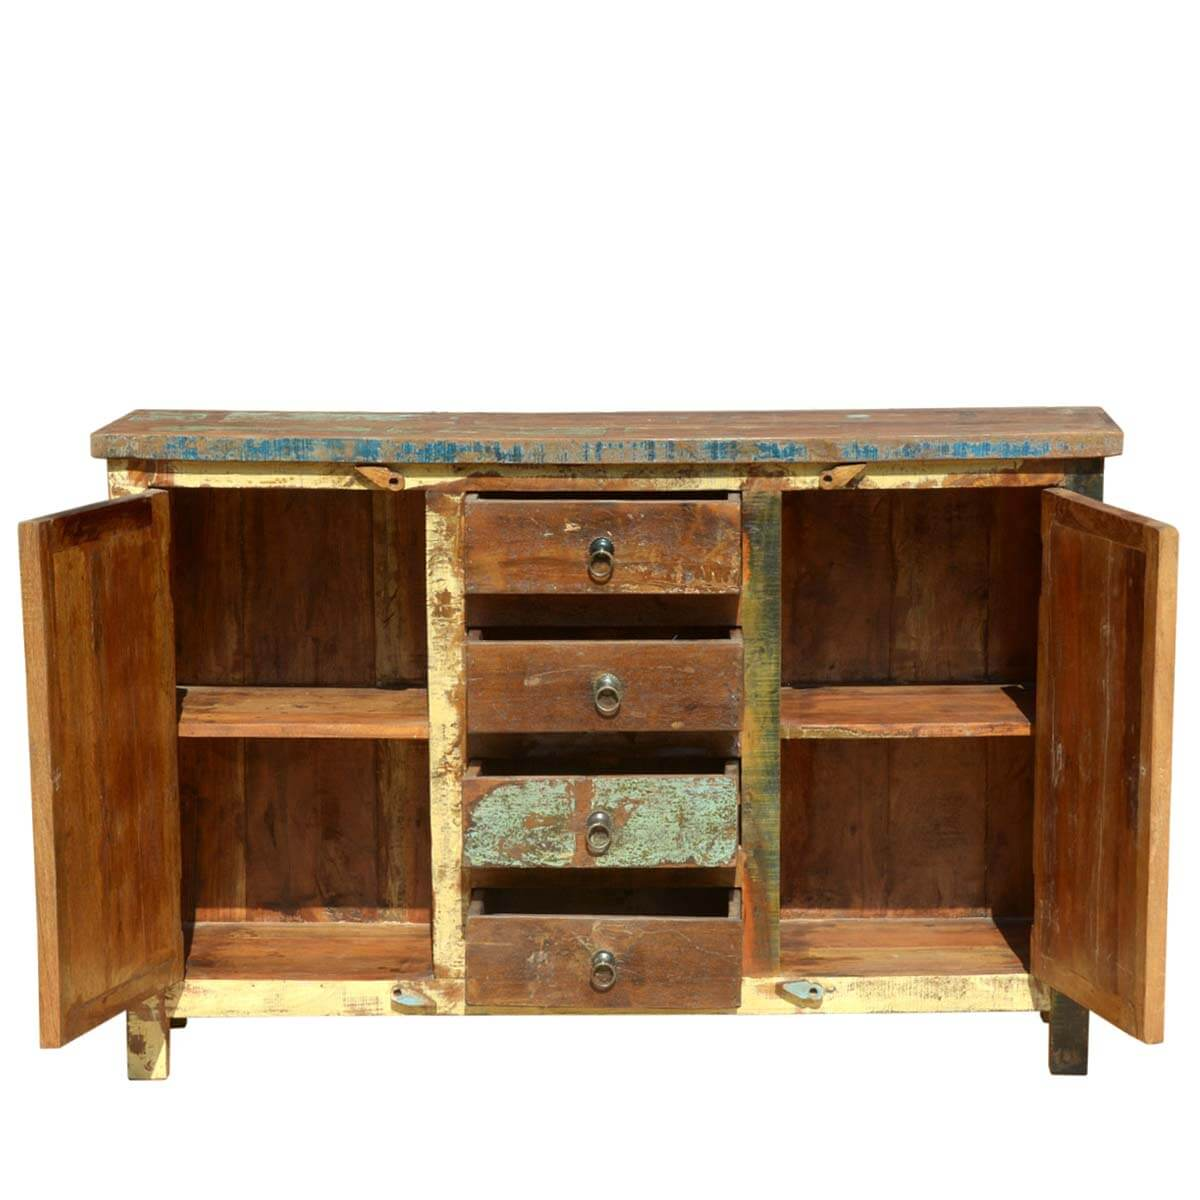 Reclaimed Wooden Mosaic Rustic Sideboard Buffet Cabinet : 55982 from sierralivingconcepts.com size 1200 x 1200 jpeg 115kB